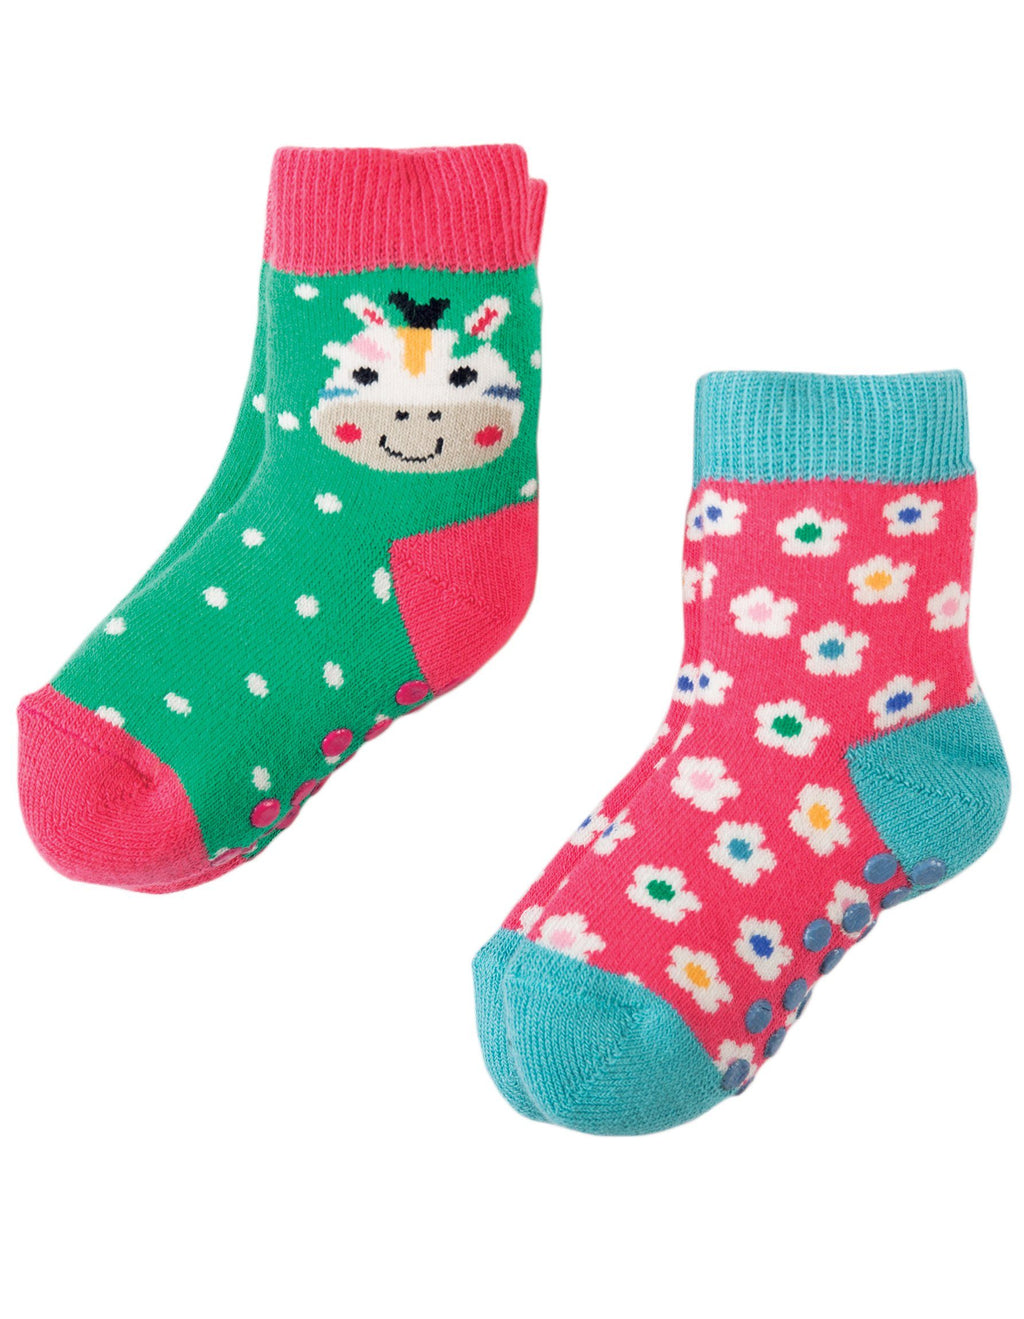 Grippy socks - 2 pack - zebra & flower